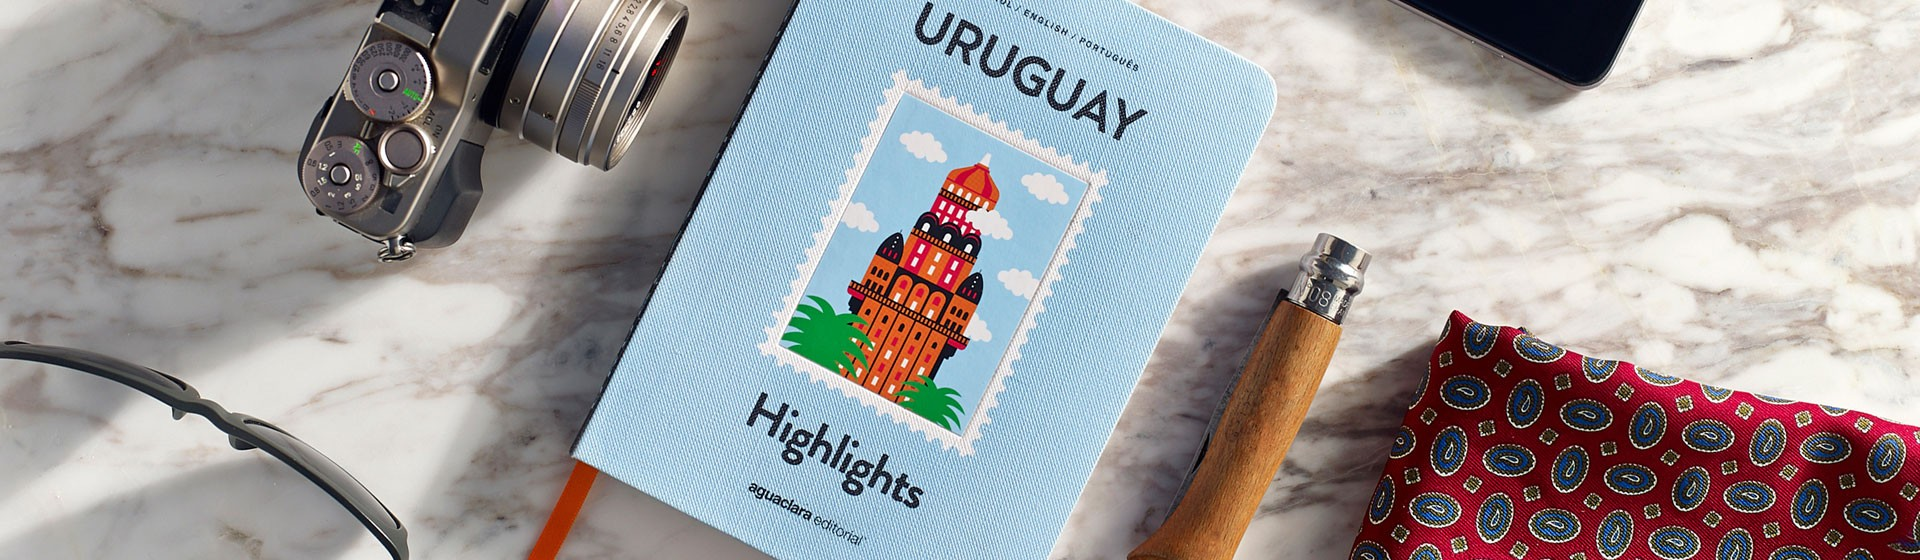 Uruguay Highlight